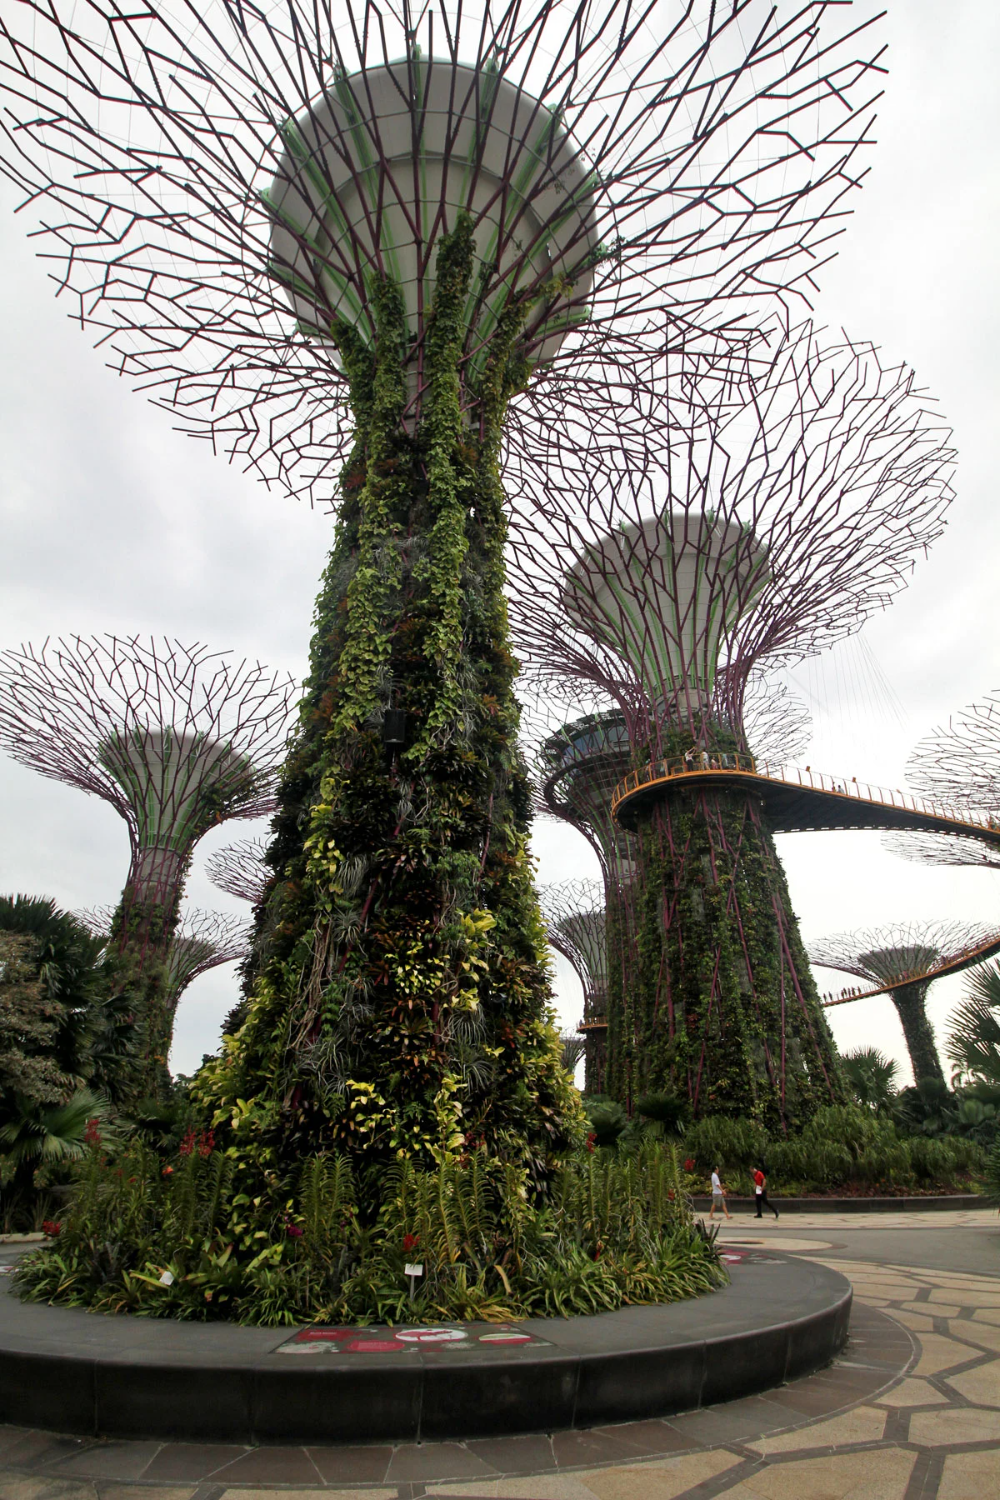 7e938b272c5513ce889a2f399f7c0907 - Gardens By The Bay If Raining